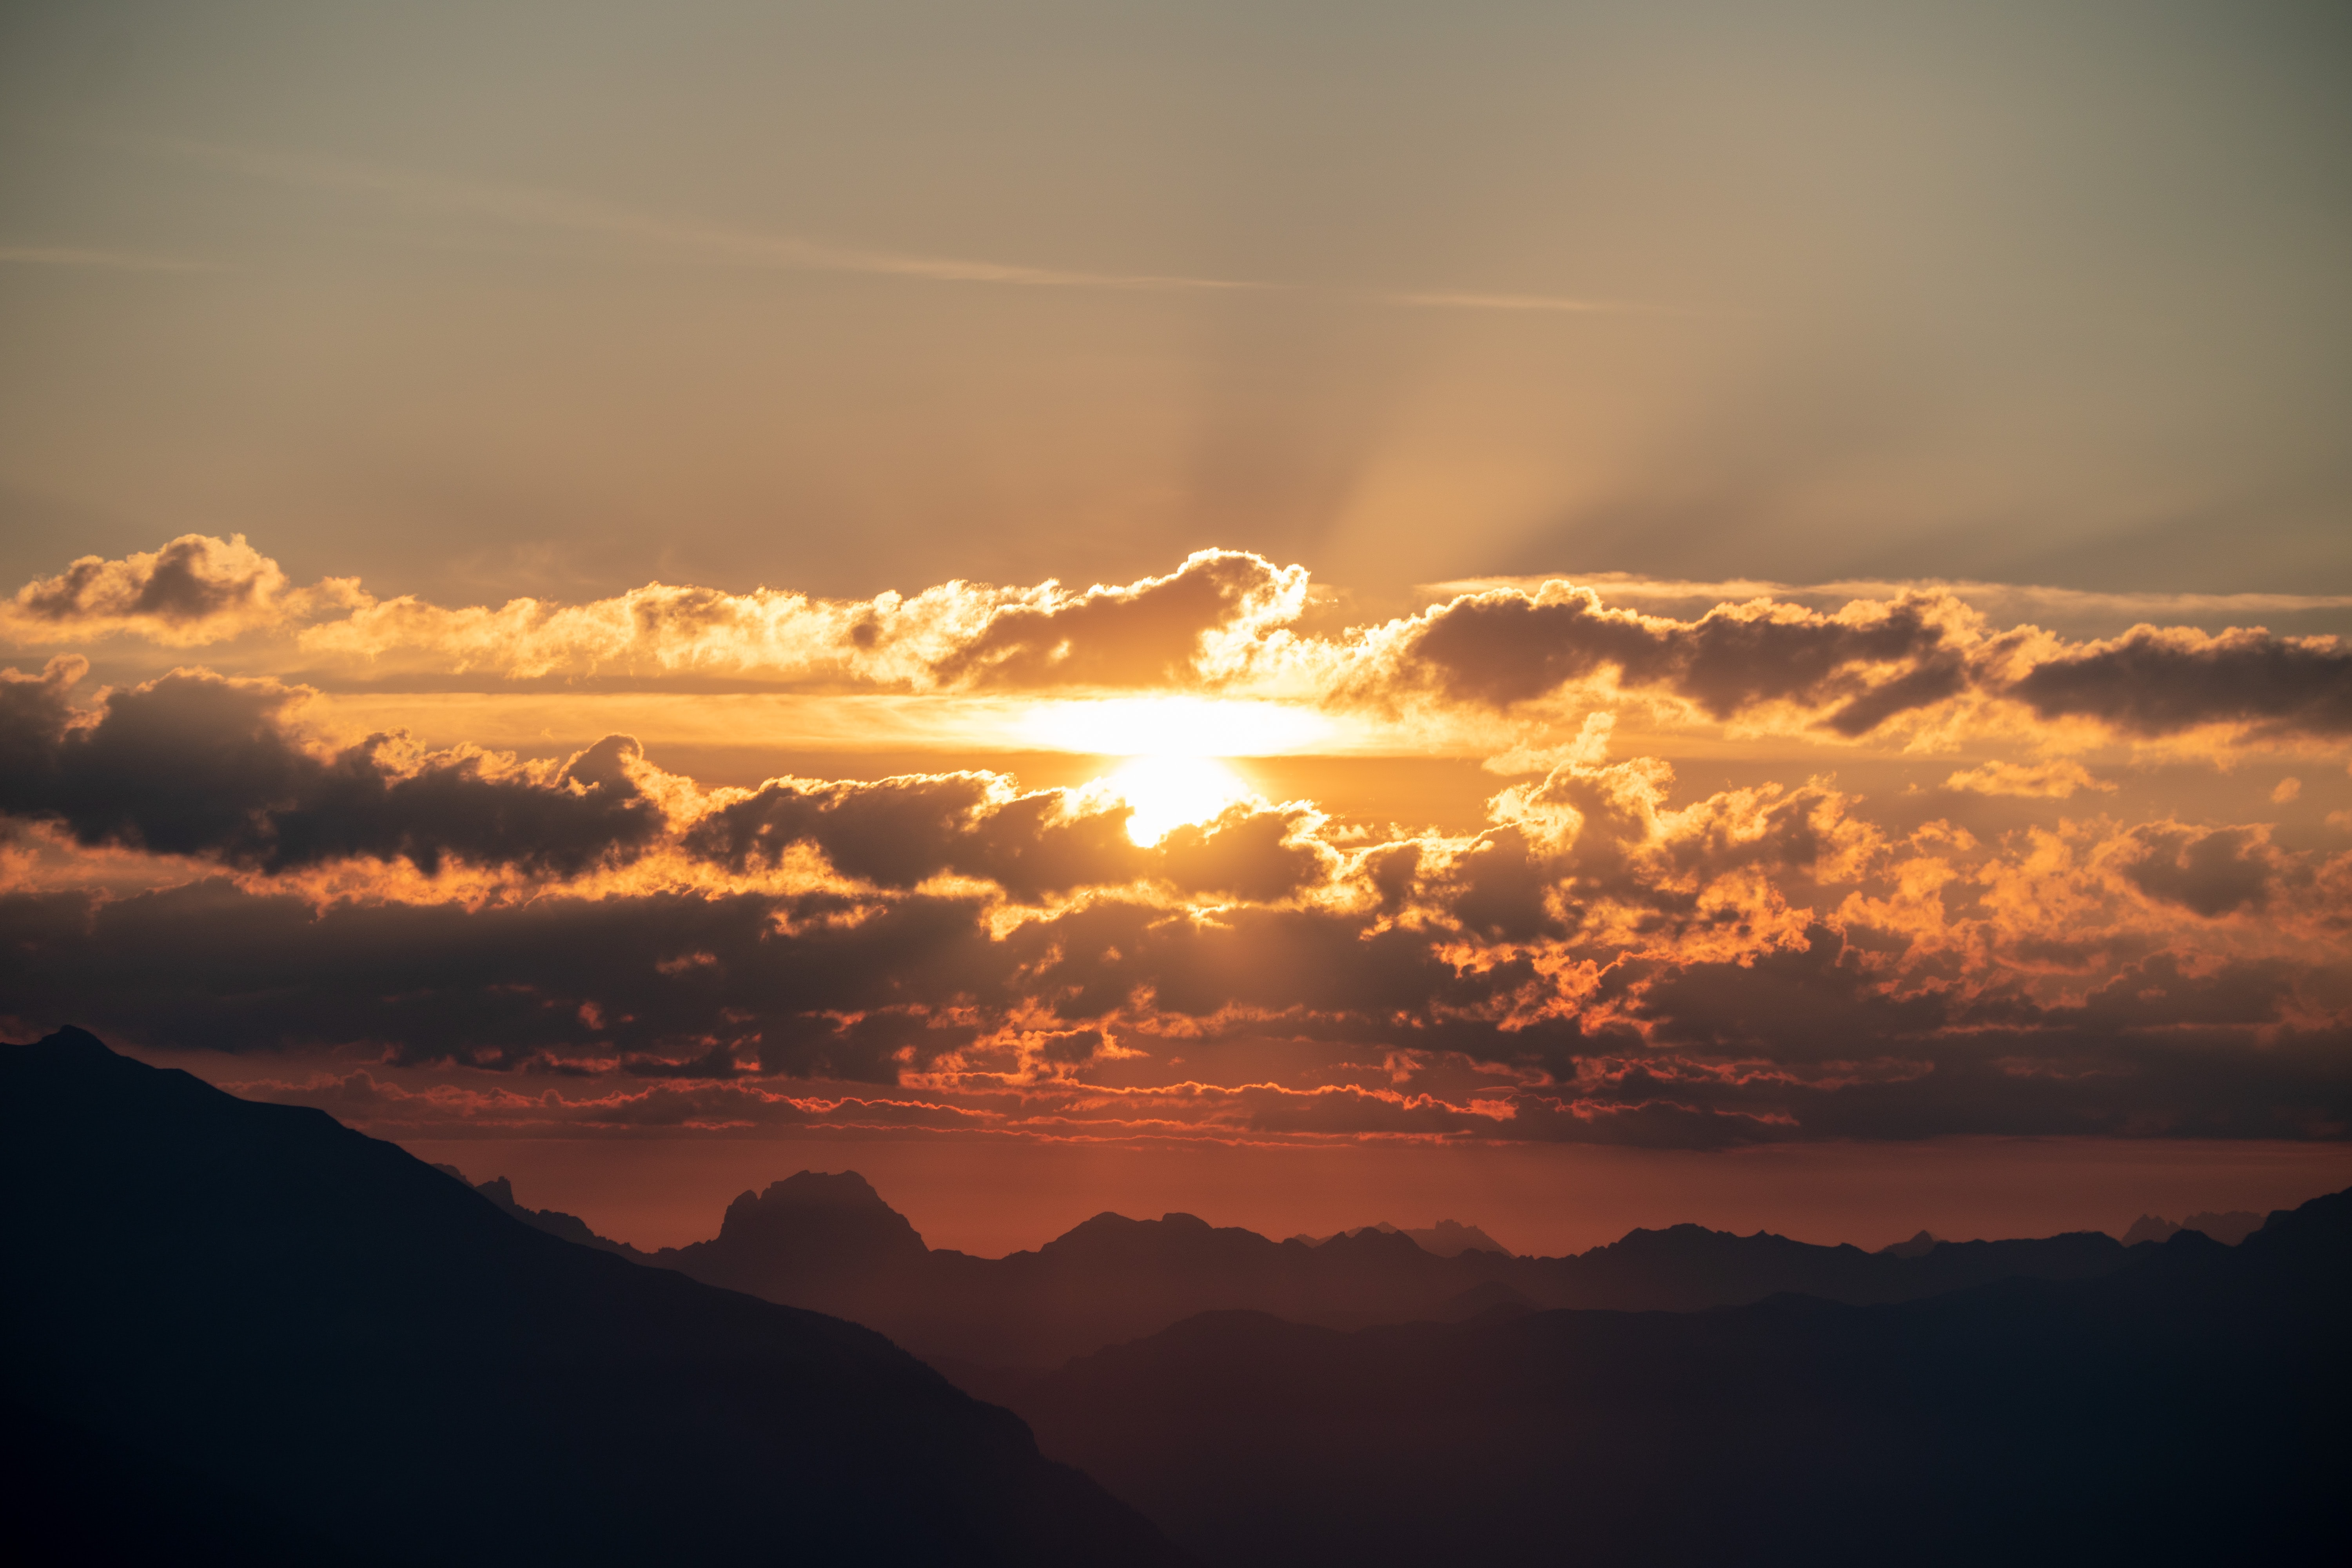 mountains under orange sky with sun rays piercing through clouds